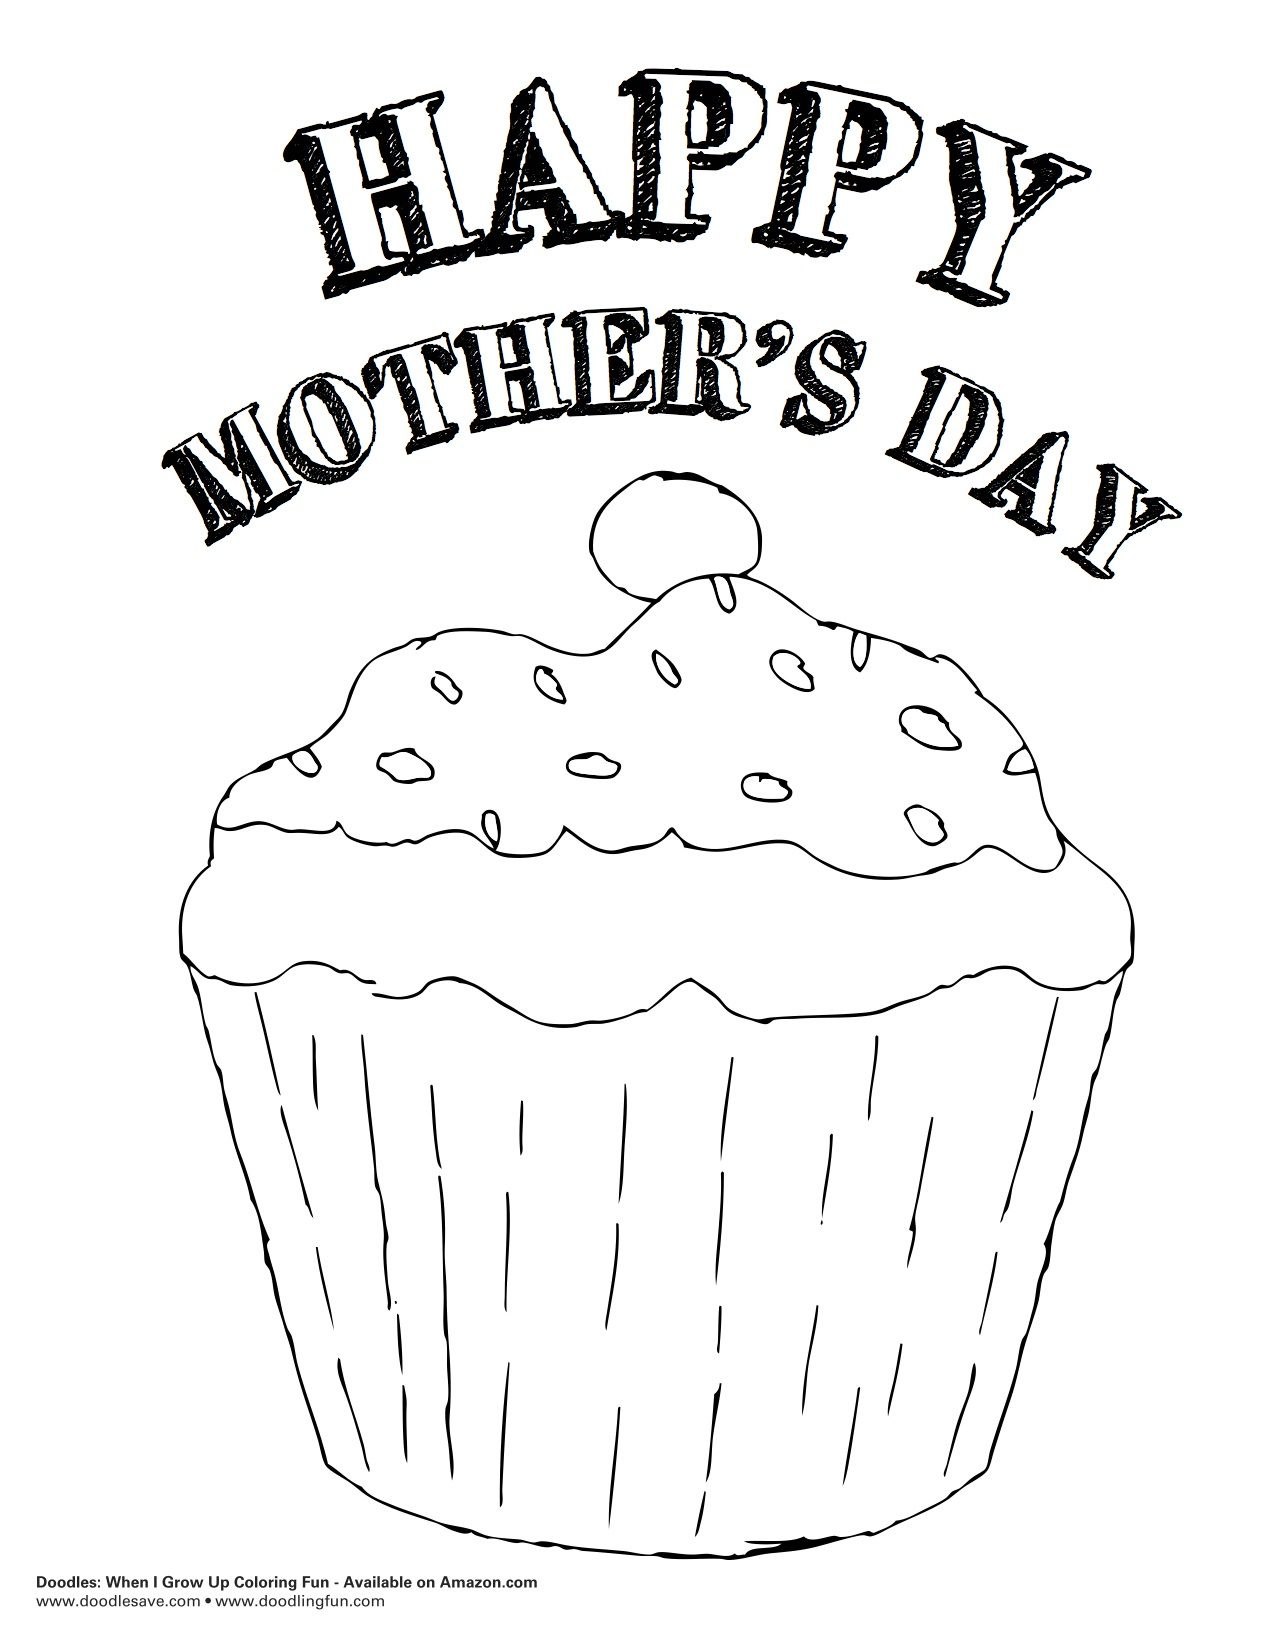 Happy Mother's Day Coloring http://doodlesave.files